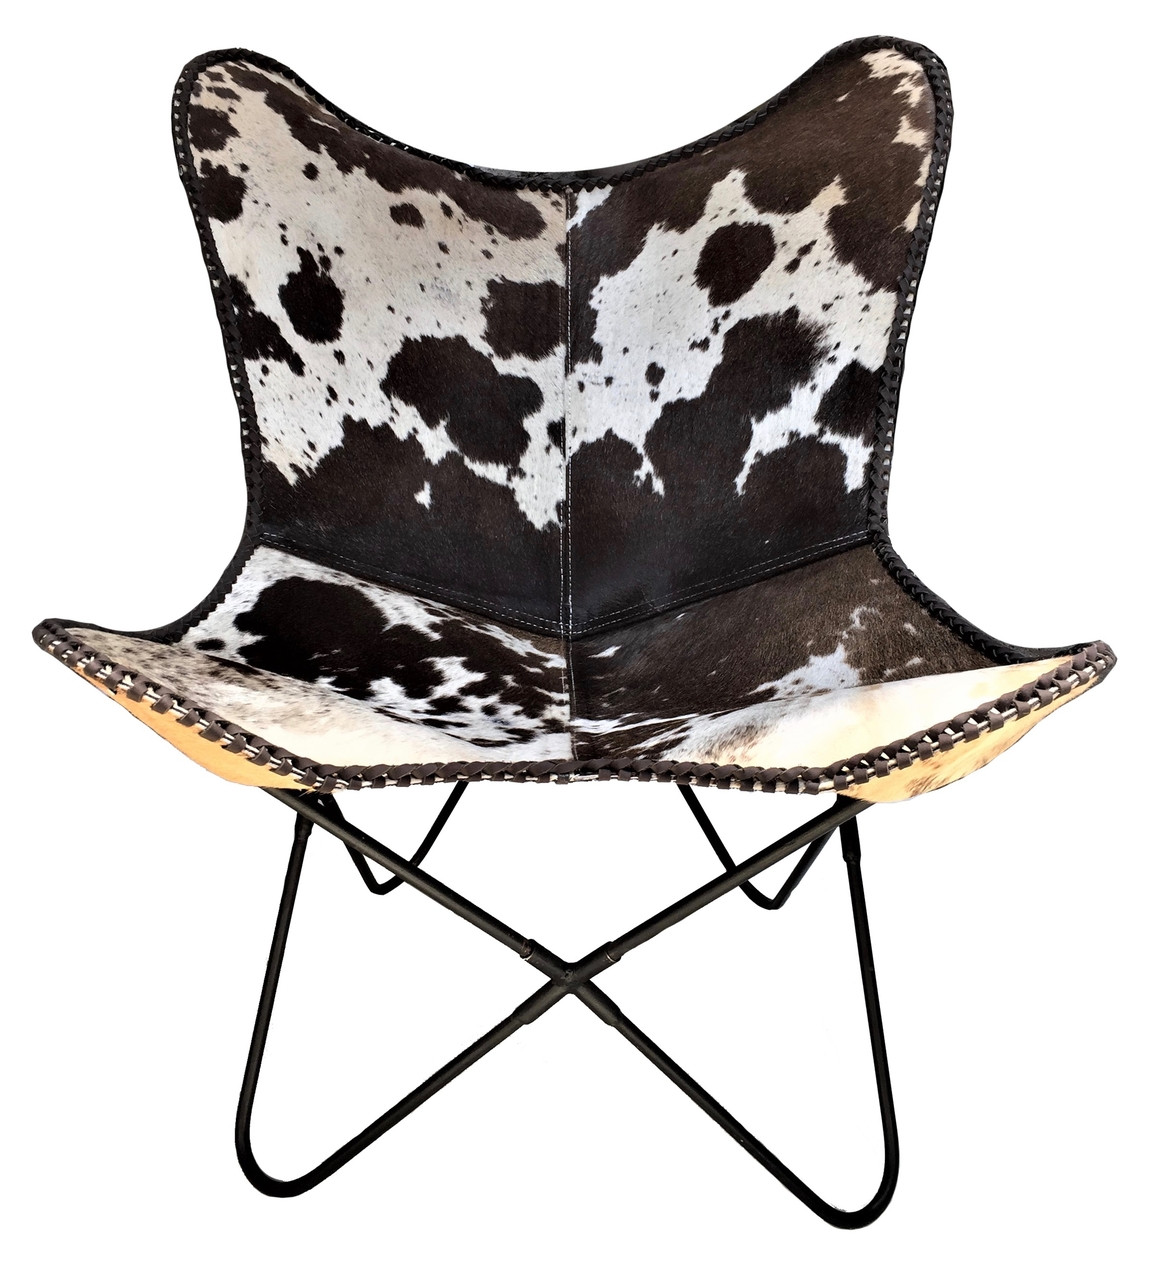 Marvelous Graf Butterfly Chair In Brown And White Cowhide On Sale Squirreltailoven Fun Painted Chair Ideas Images Squirreltailovenorg